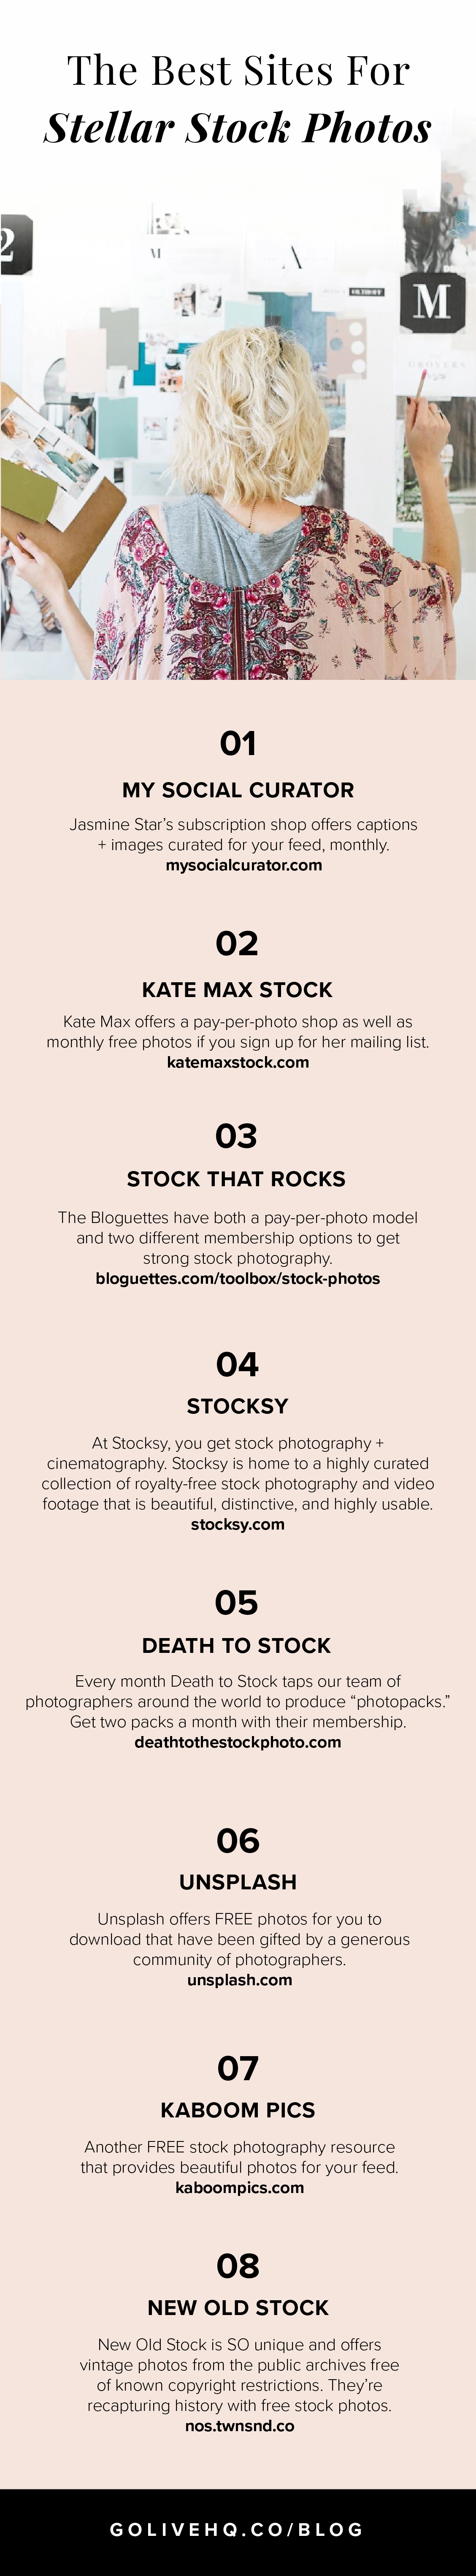 The best modern and stylish stock photography websites by Go Live HQ